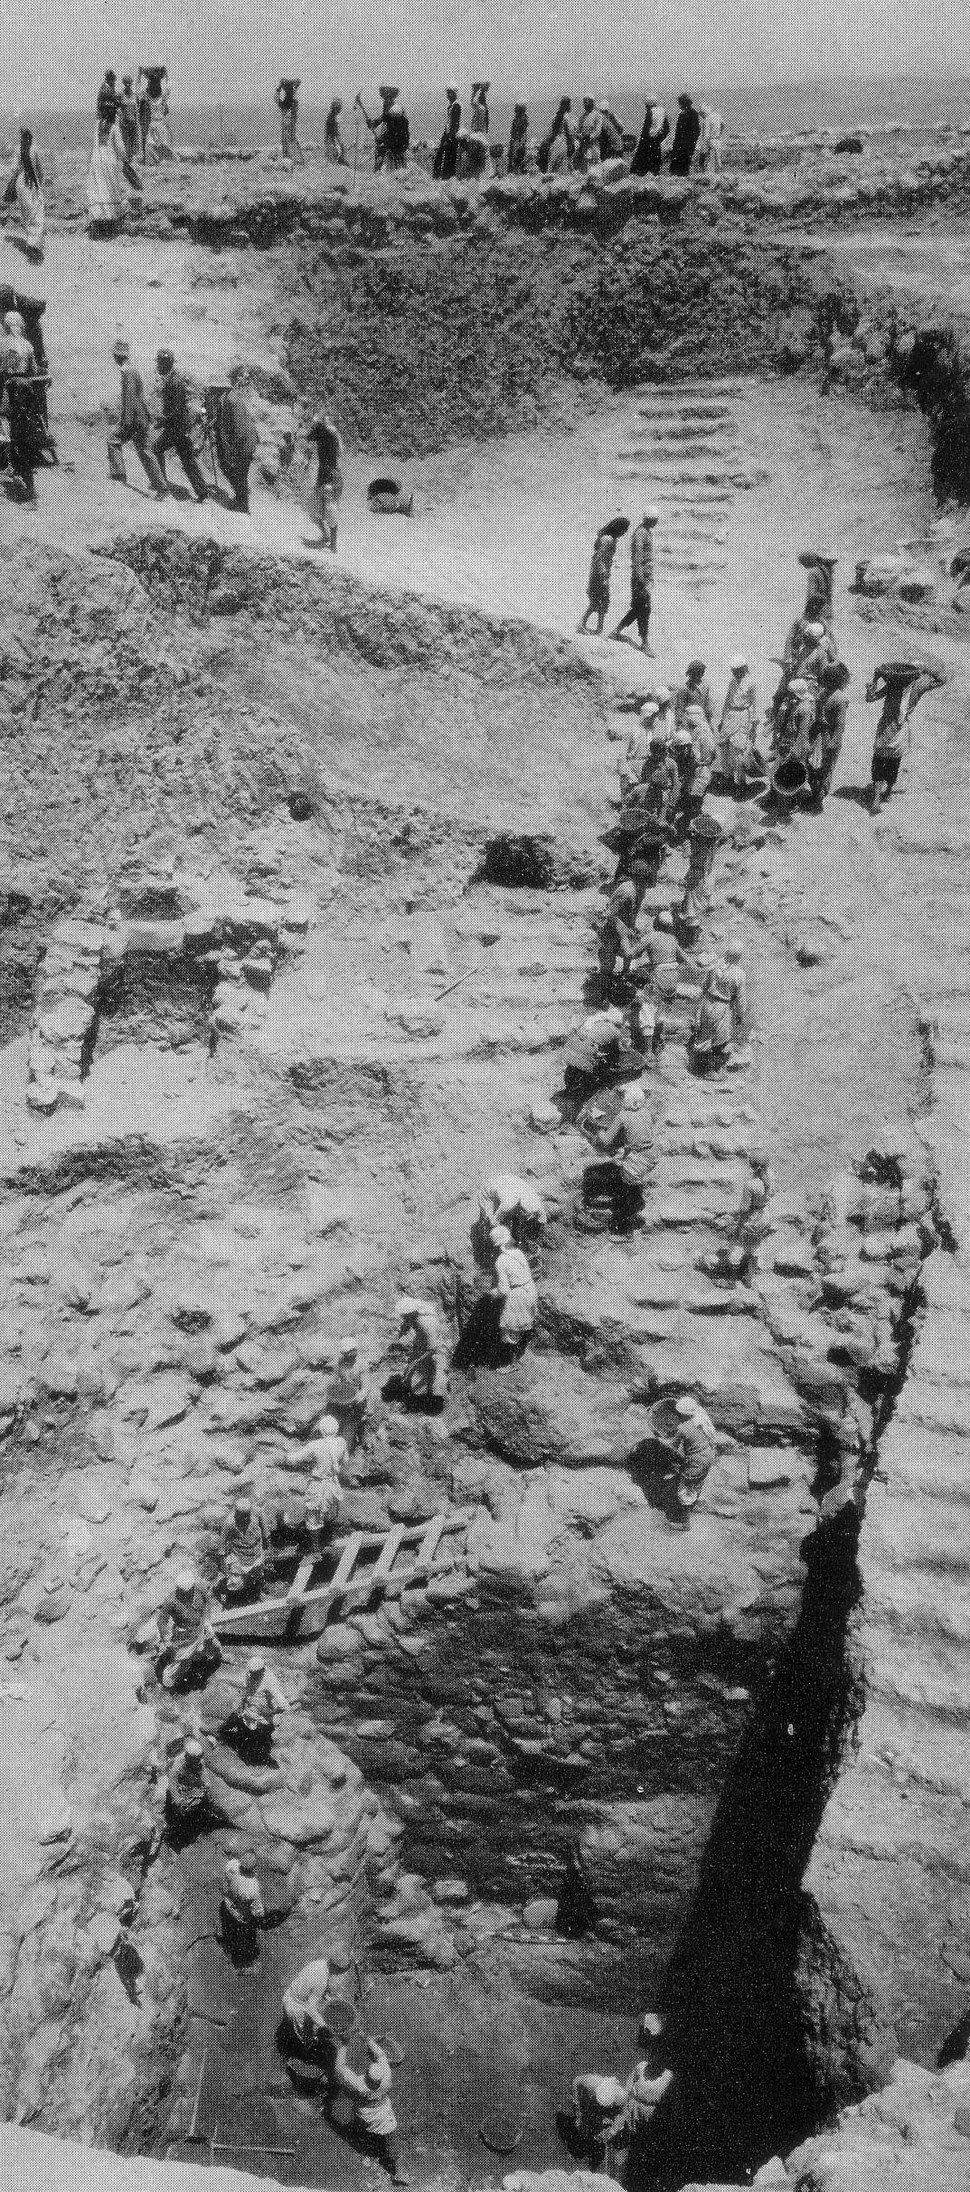 Megiddo water system excavations 1925-1939